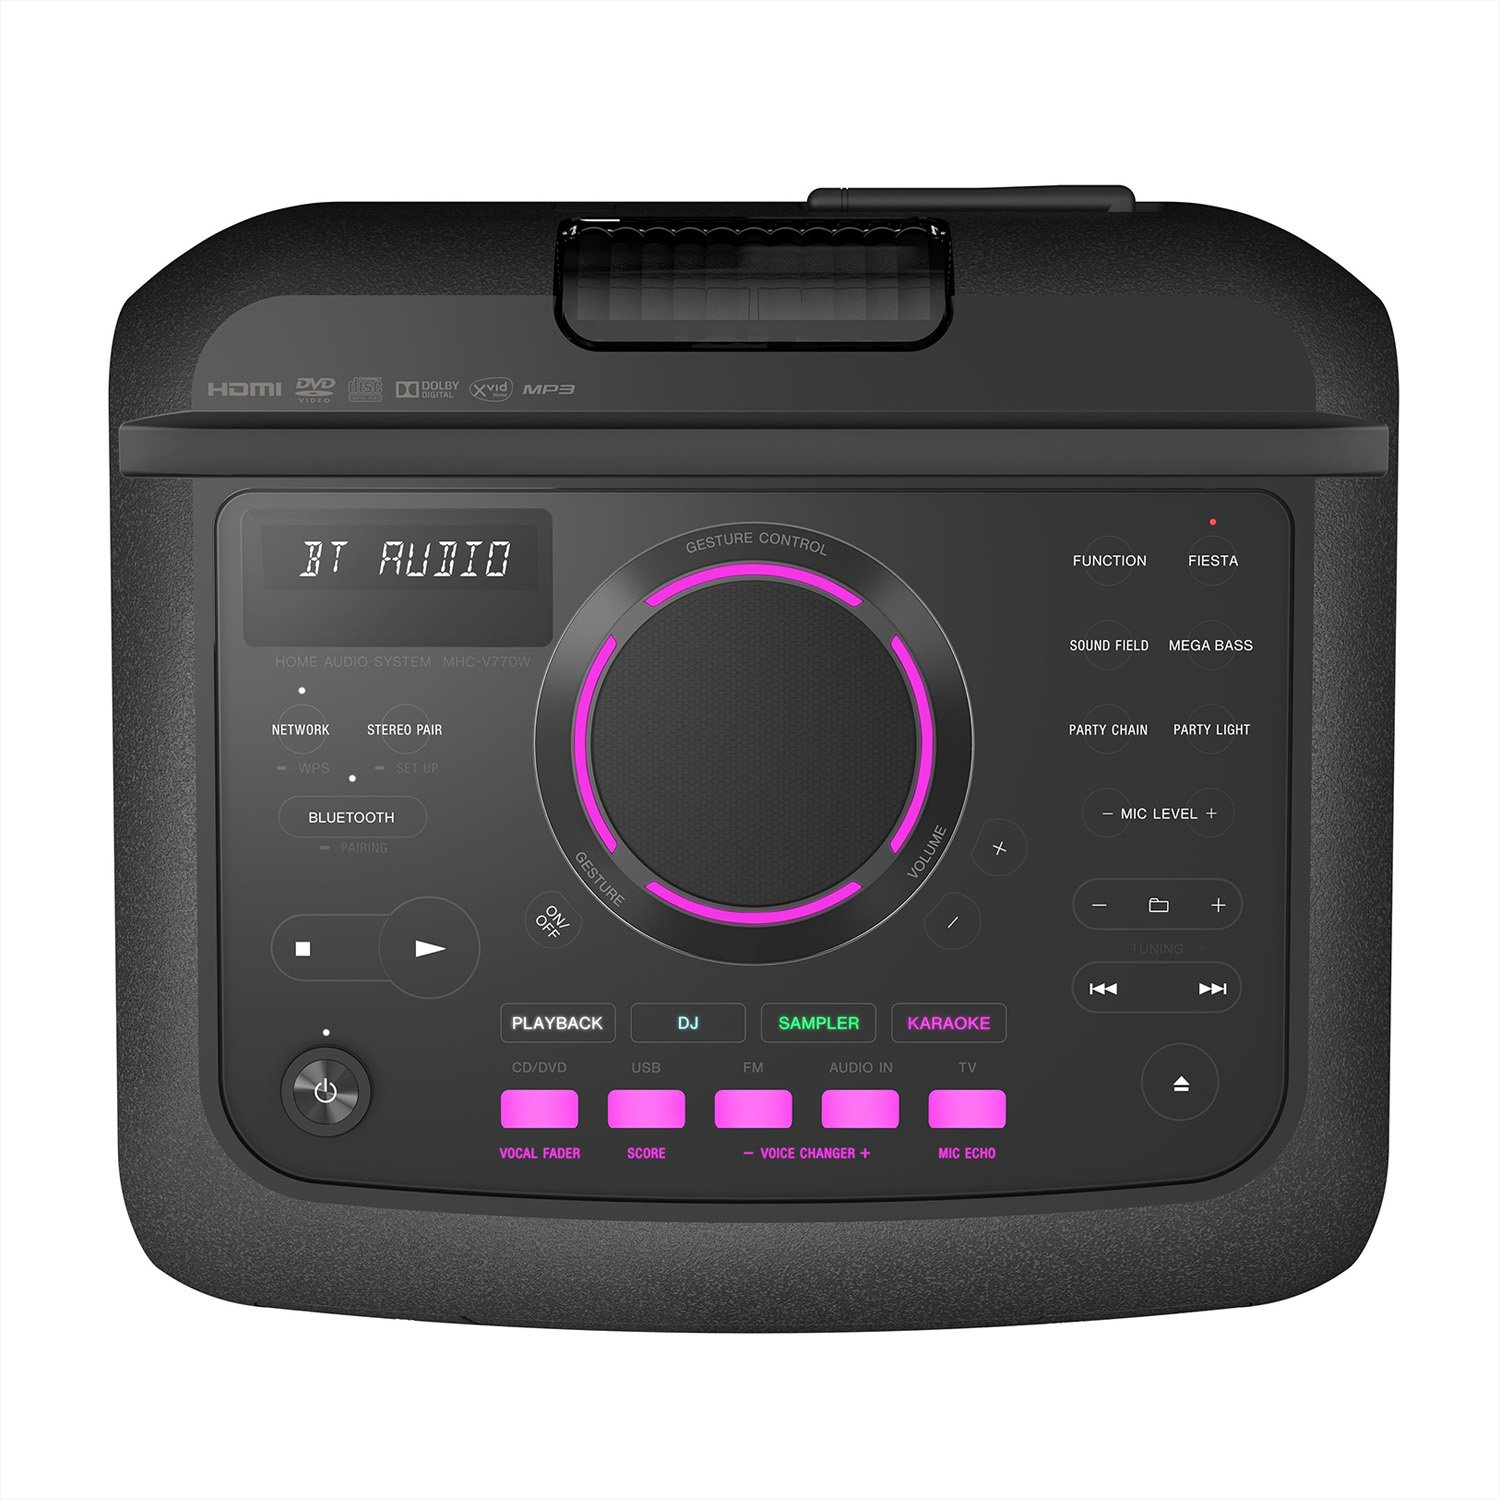 Sony Mhc V77d Portable Personal Dj System With Touch Panel Black Media Panels Home Enhancement Systems Price Buy Online In